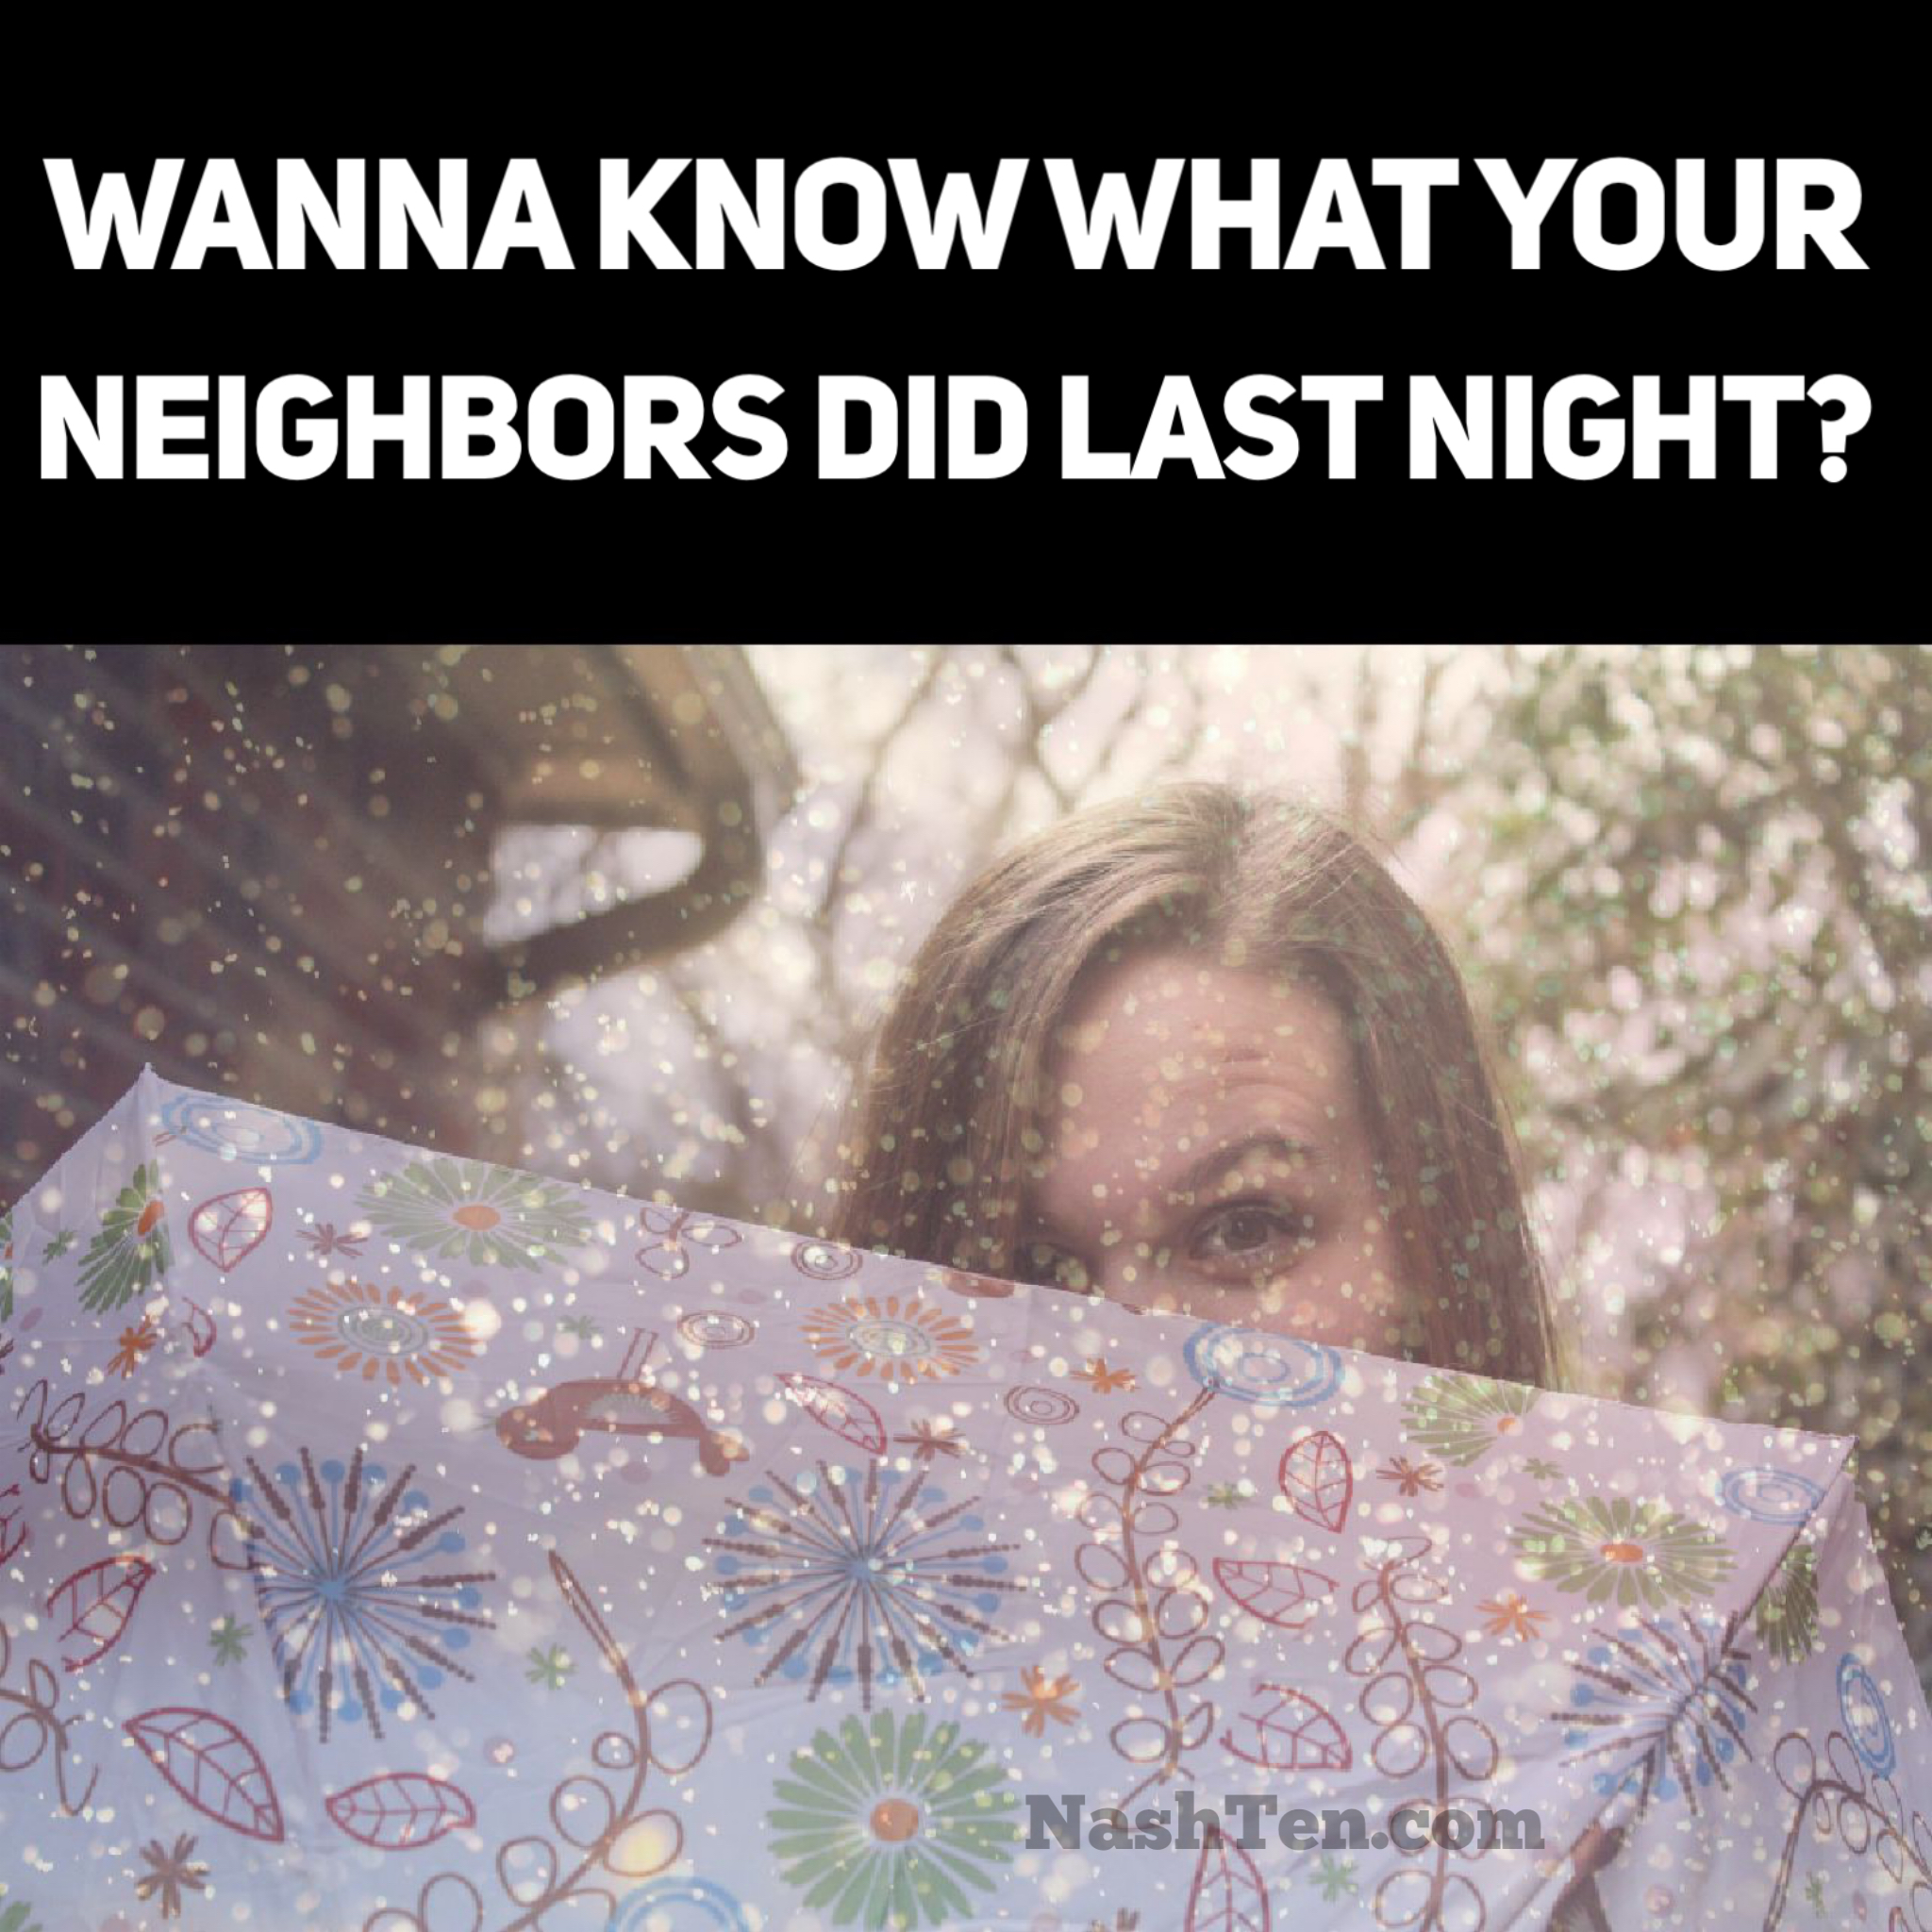 Wanna know what your neighbors did last night?